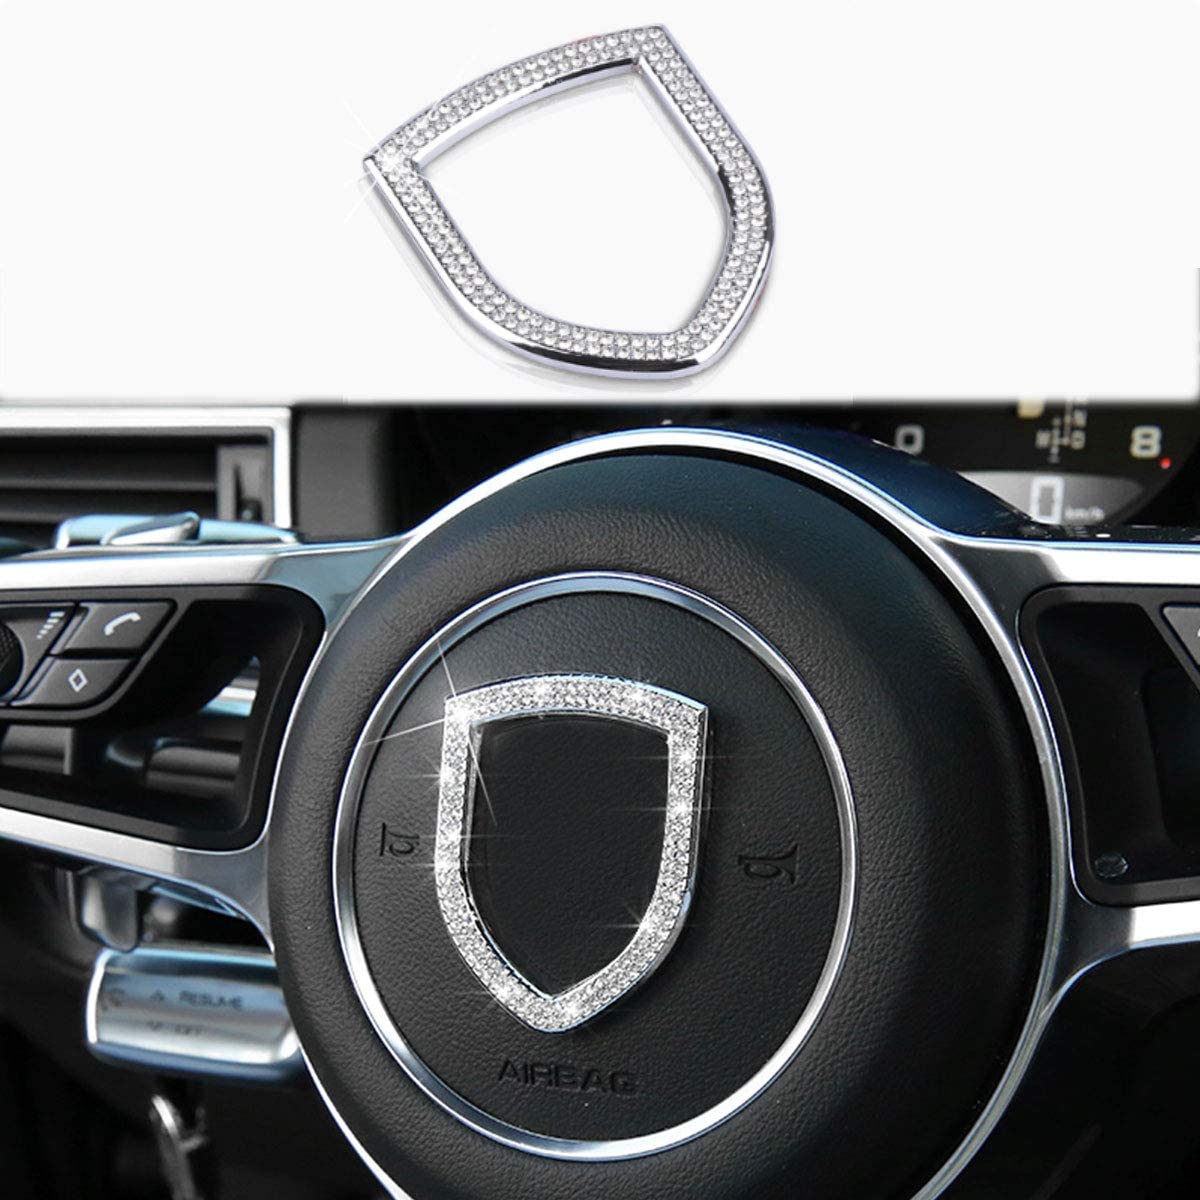 Luster Crystal Diamond Car Decor Accessories for Women Bling Bling Colorful Crystal Rhinestones Car Seat Belt Shoulder Pads